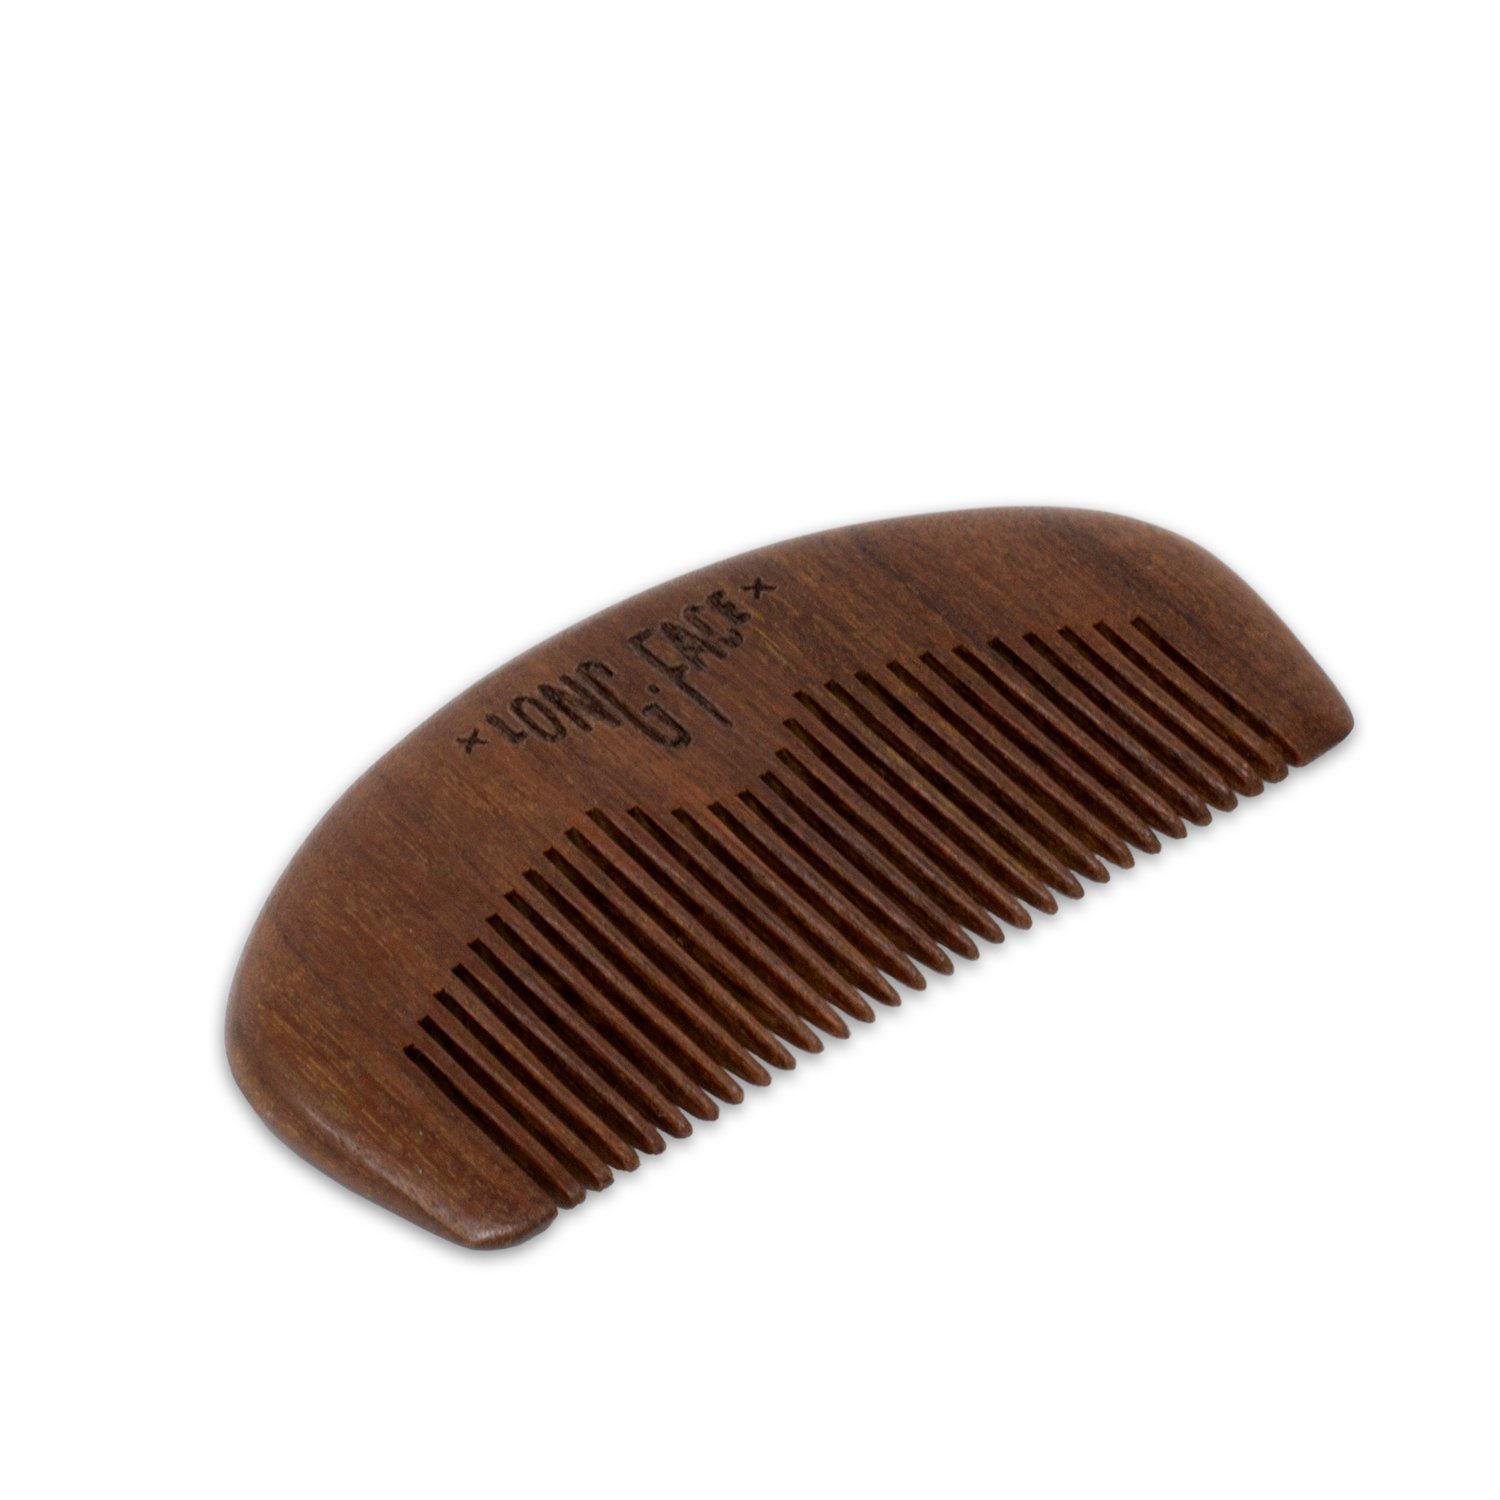 Long Face Gentleman Beard and Mustache Wood Comb, Perfect for Balms and Oils, Anti-Static, Pocket Size for all types of Beards.